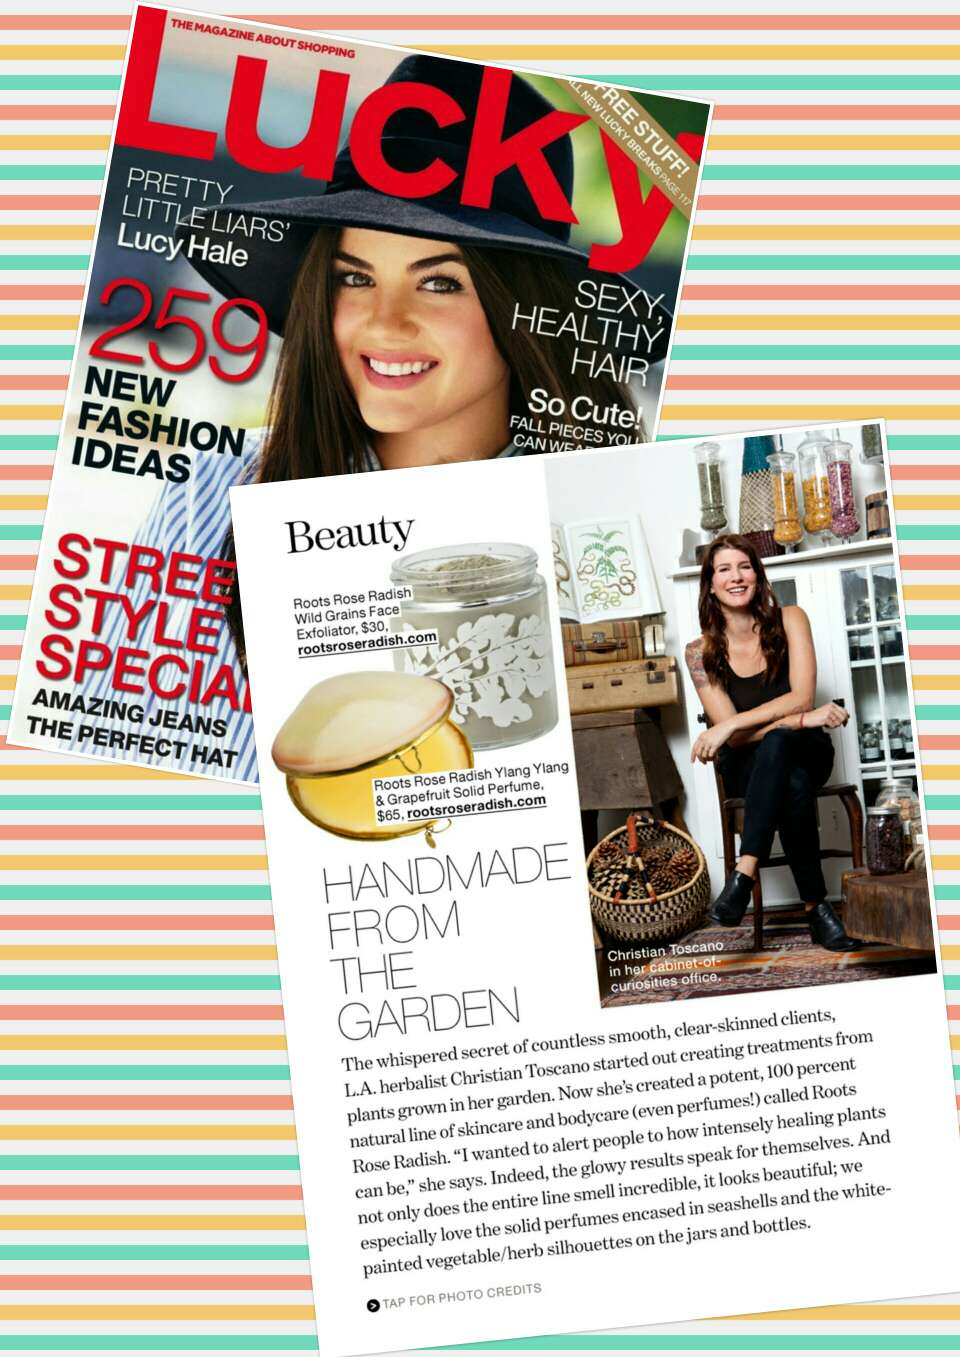 Their products have been featured in numerous magazines.